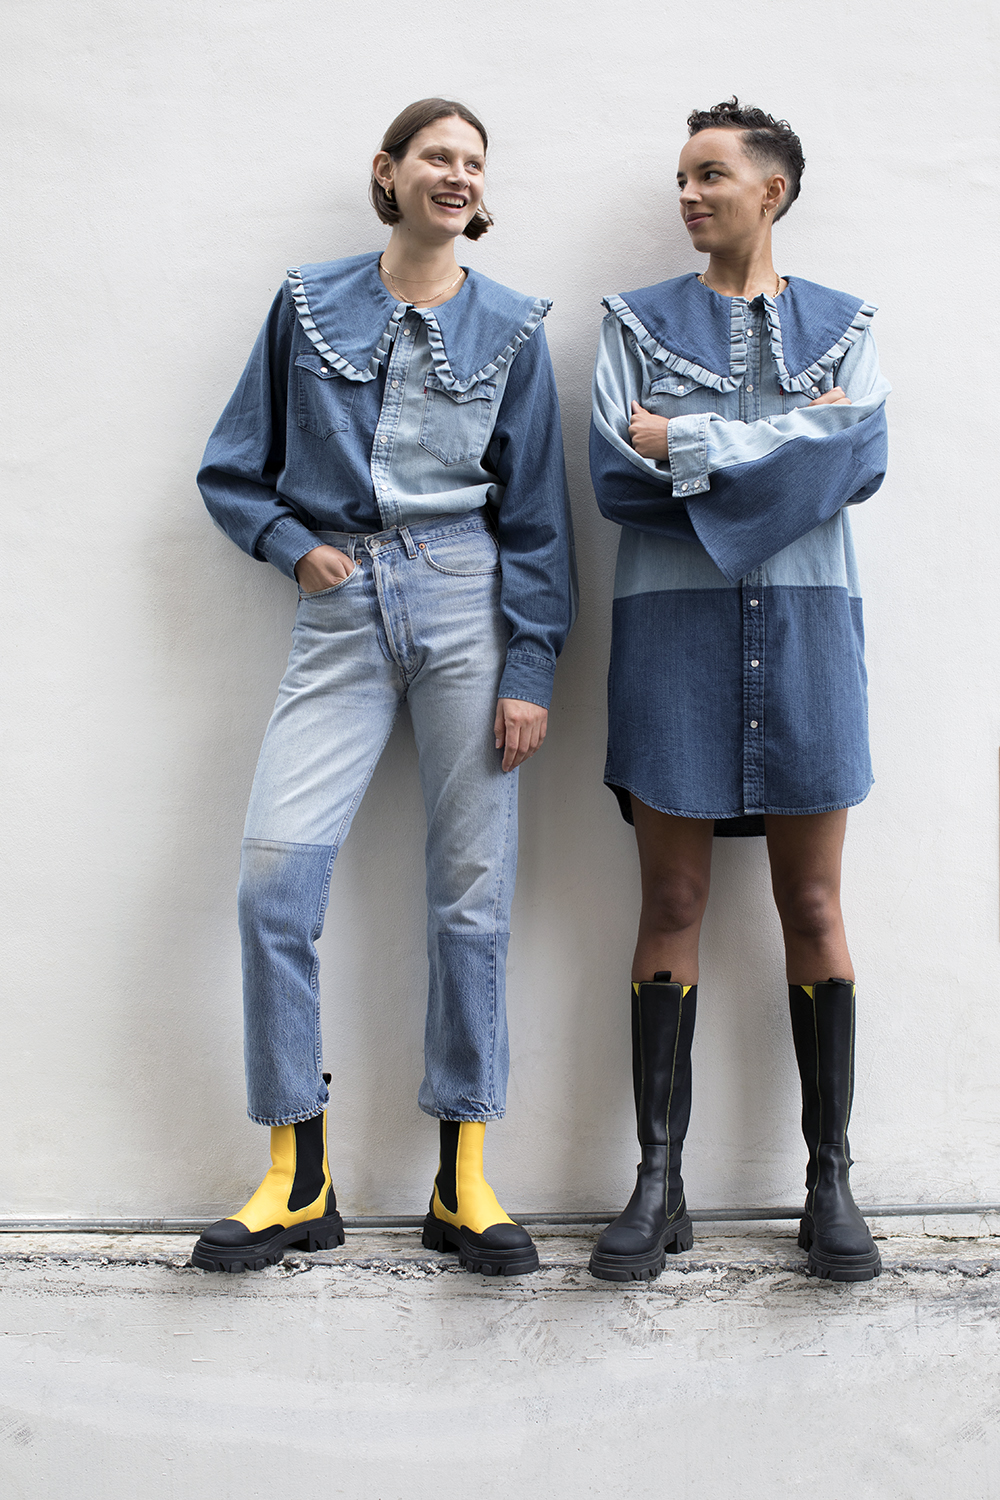 The Ganni x Levi's rental-only capsule